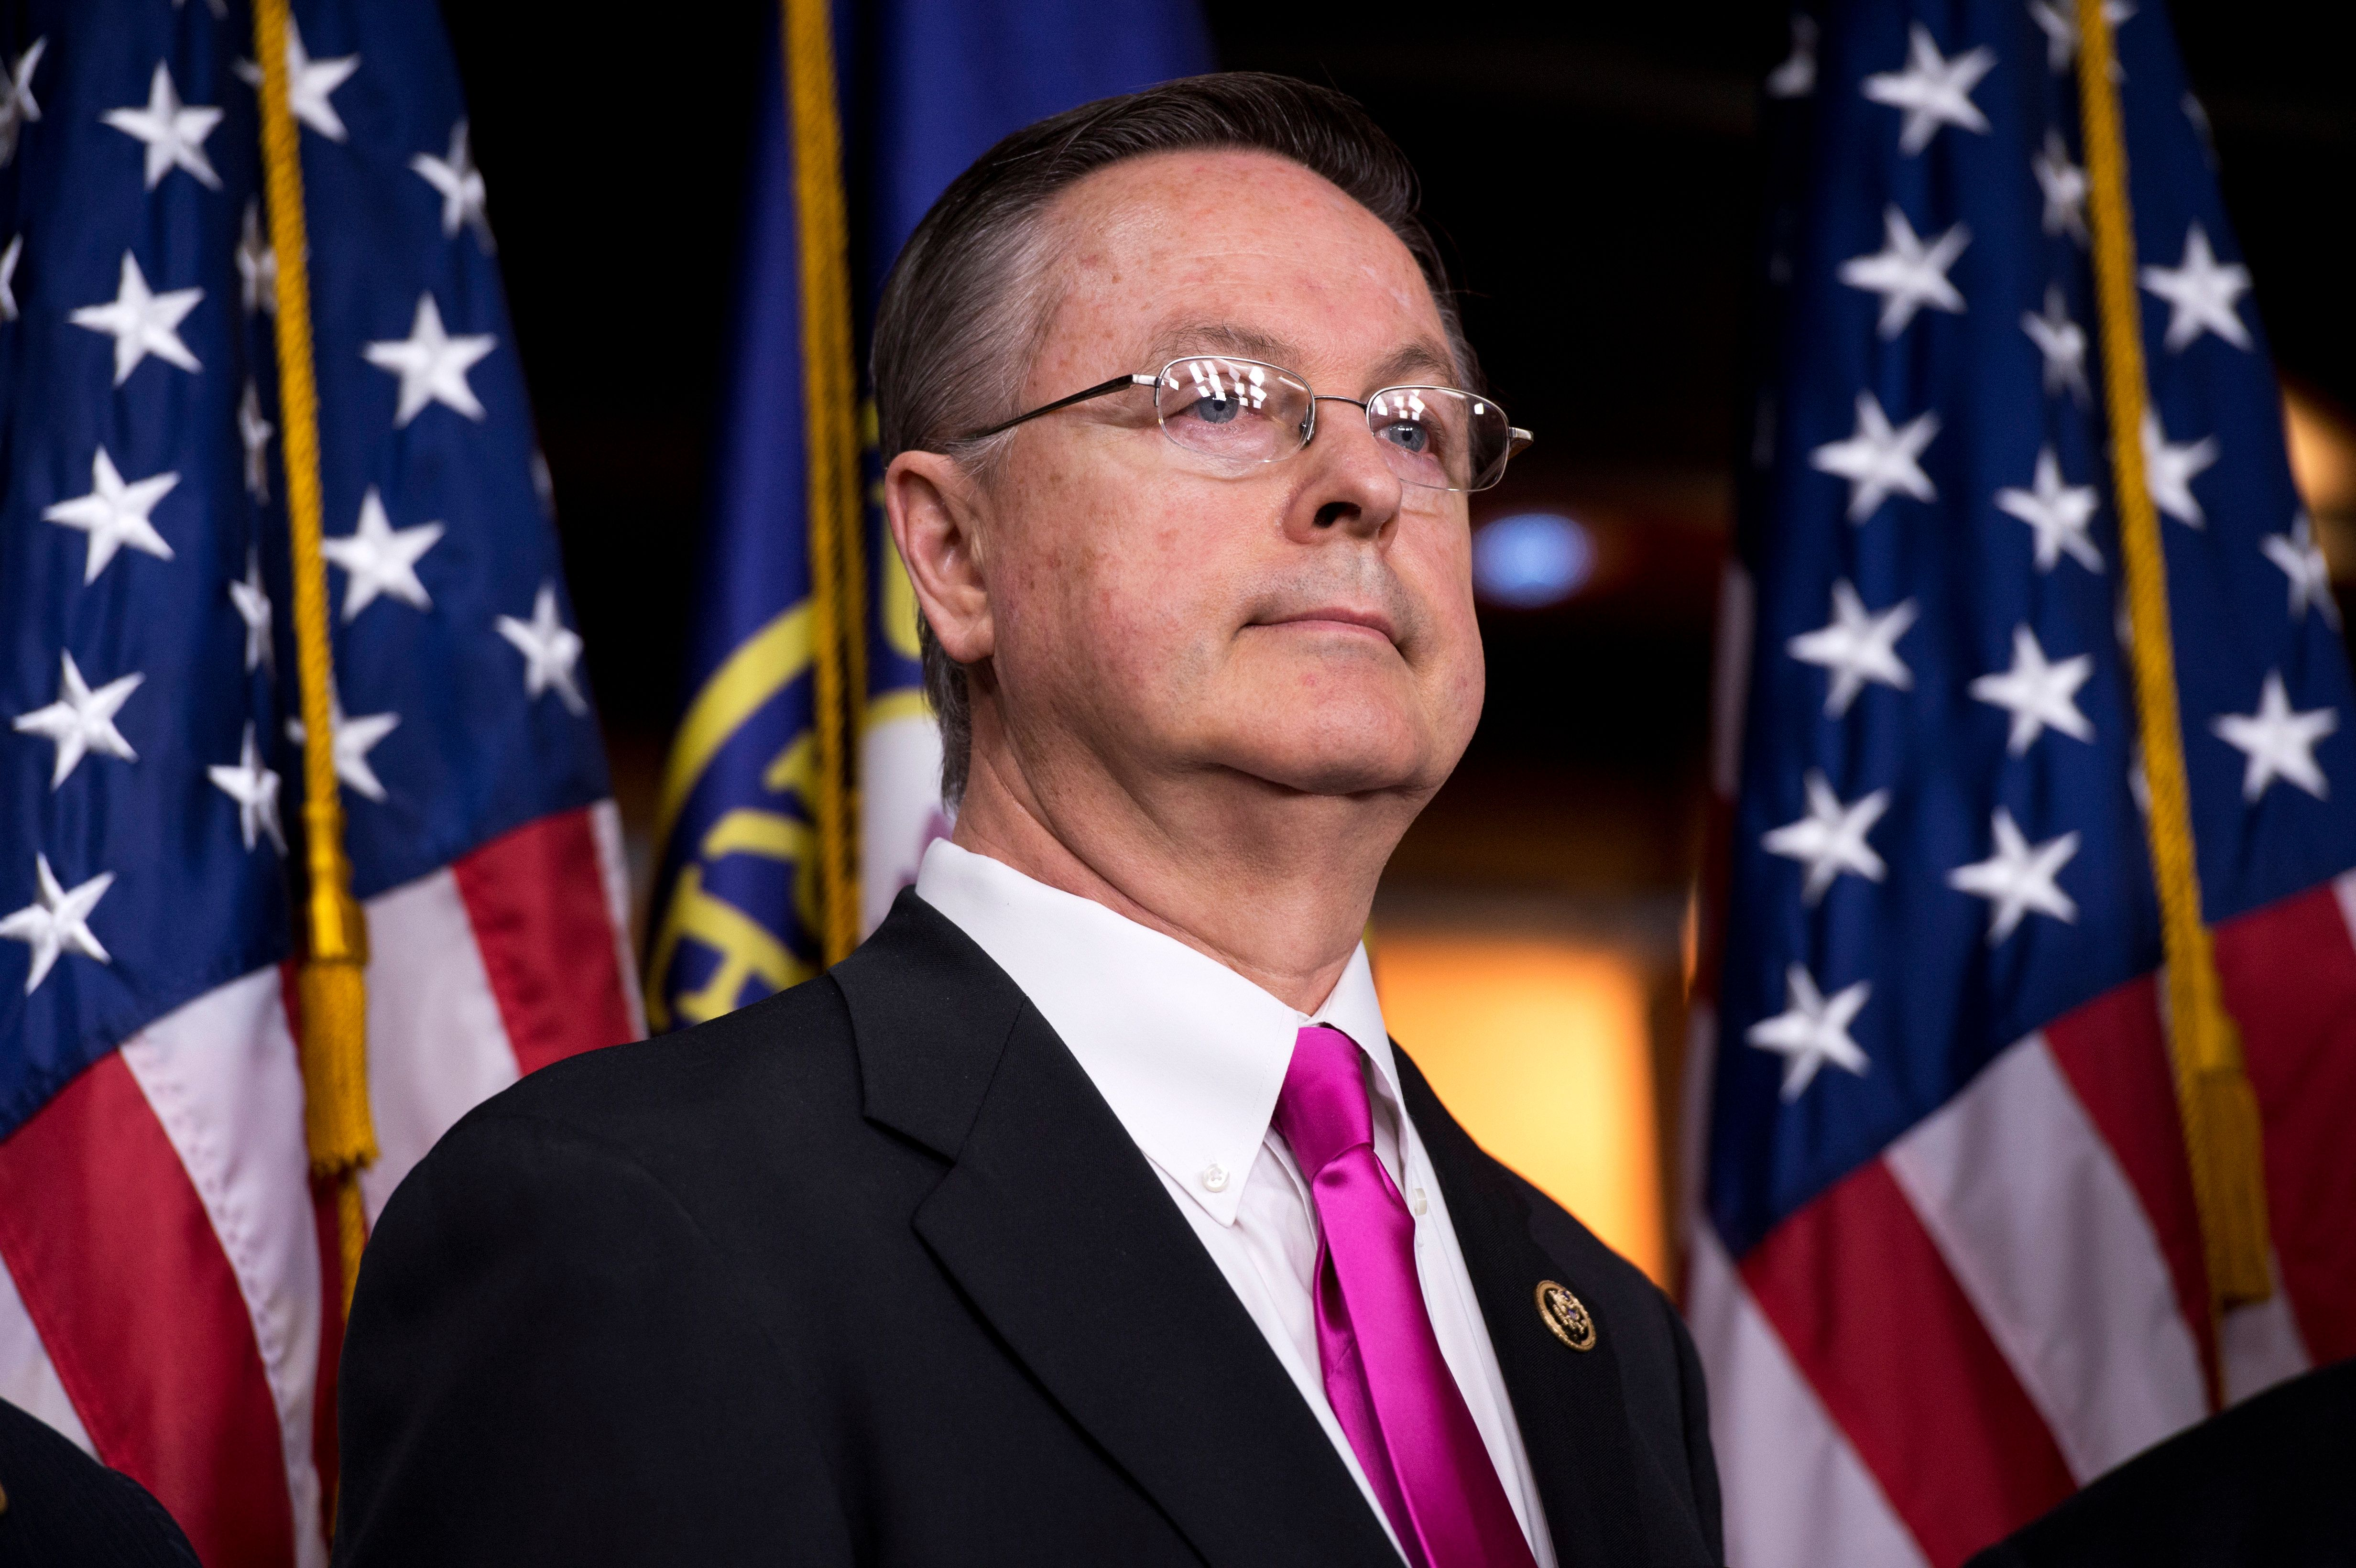 UNITED STATES - MARCH 17:  Rep. Rod Blum, R-Iowa., attends a news conference in the Capitol Visitor Center with members of the House Budget Committee to introduce the FY2016 budget resolution and discuss ways to balance the budget, March 17, 2015. (Photo By Tom Williams/CQ Roll Call)